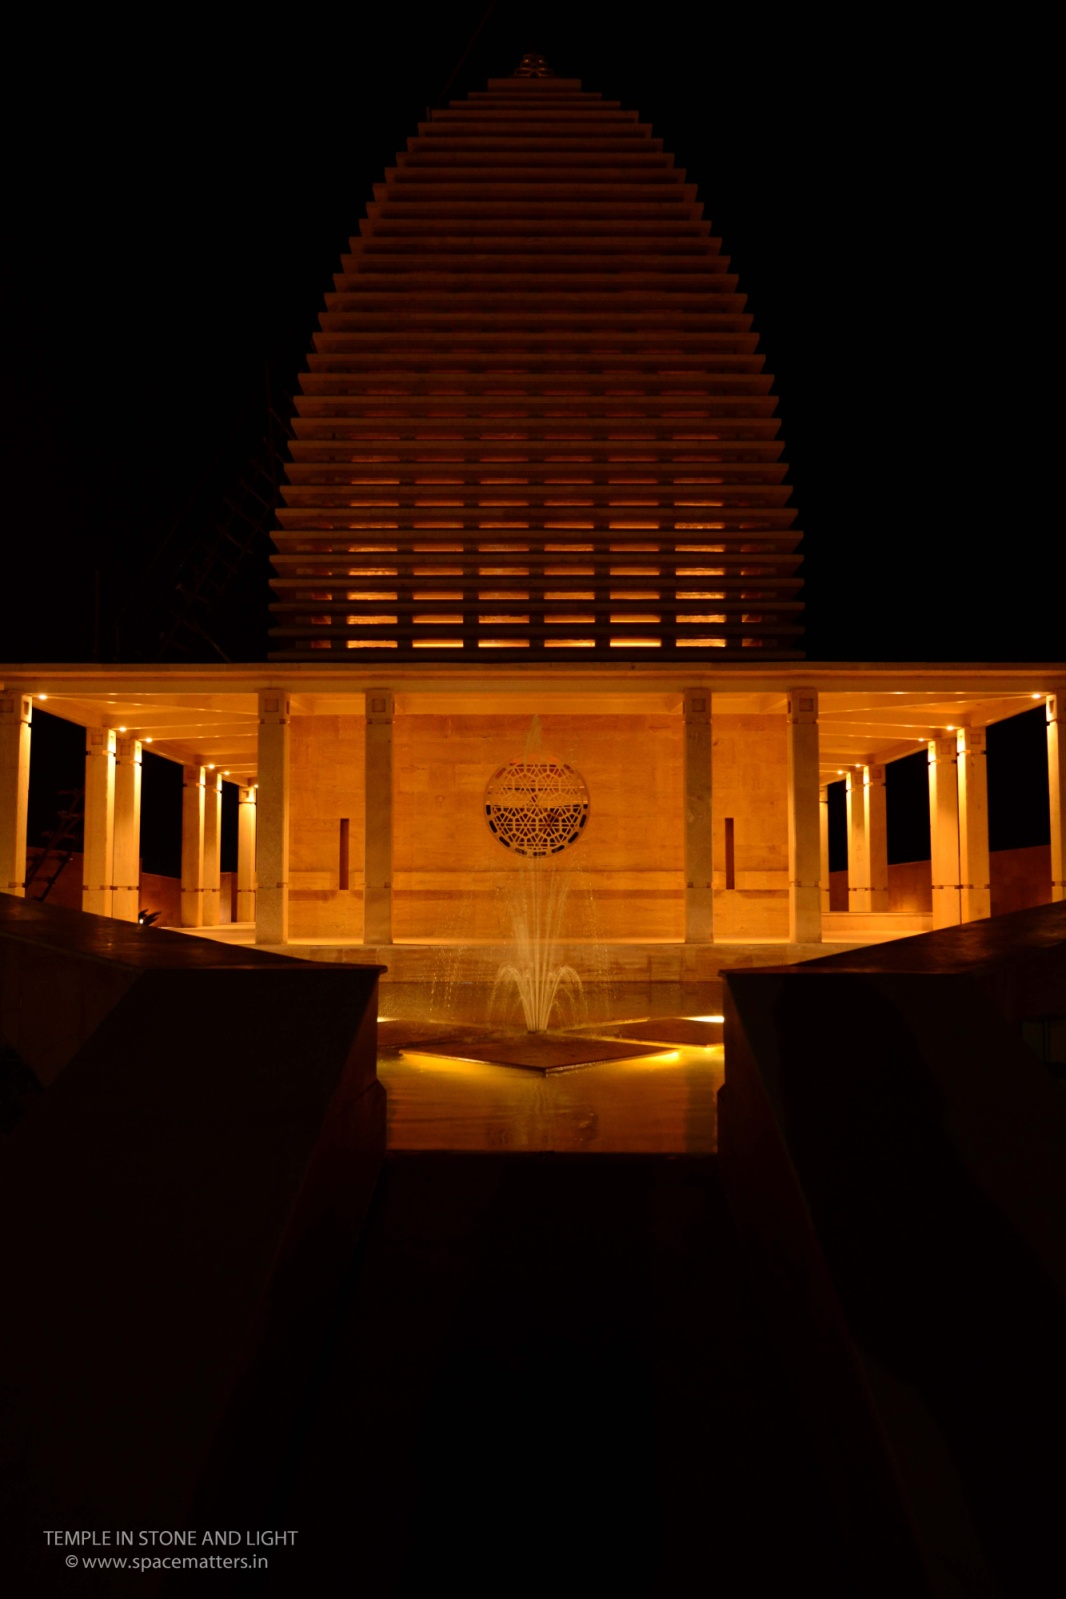 Temple in Stone and Light